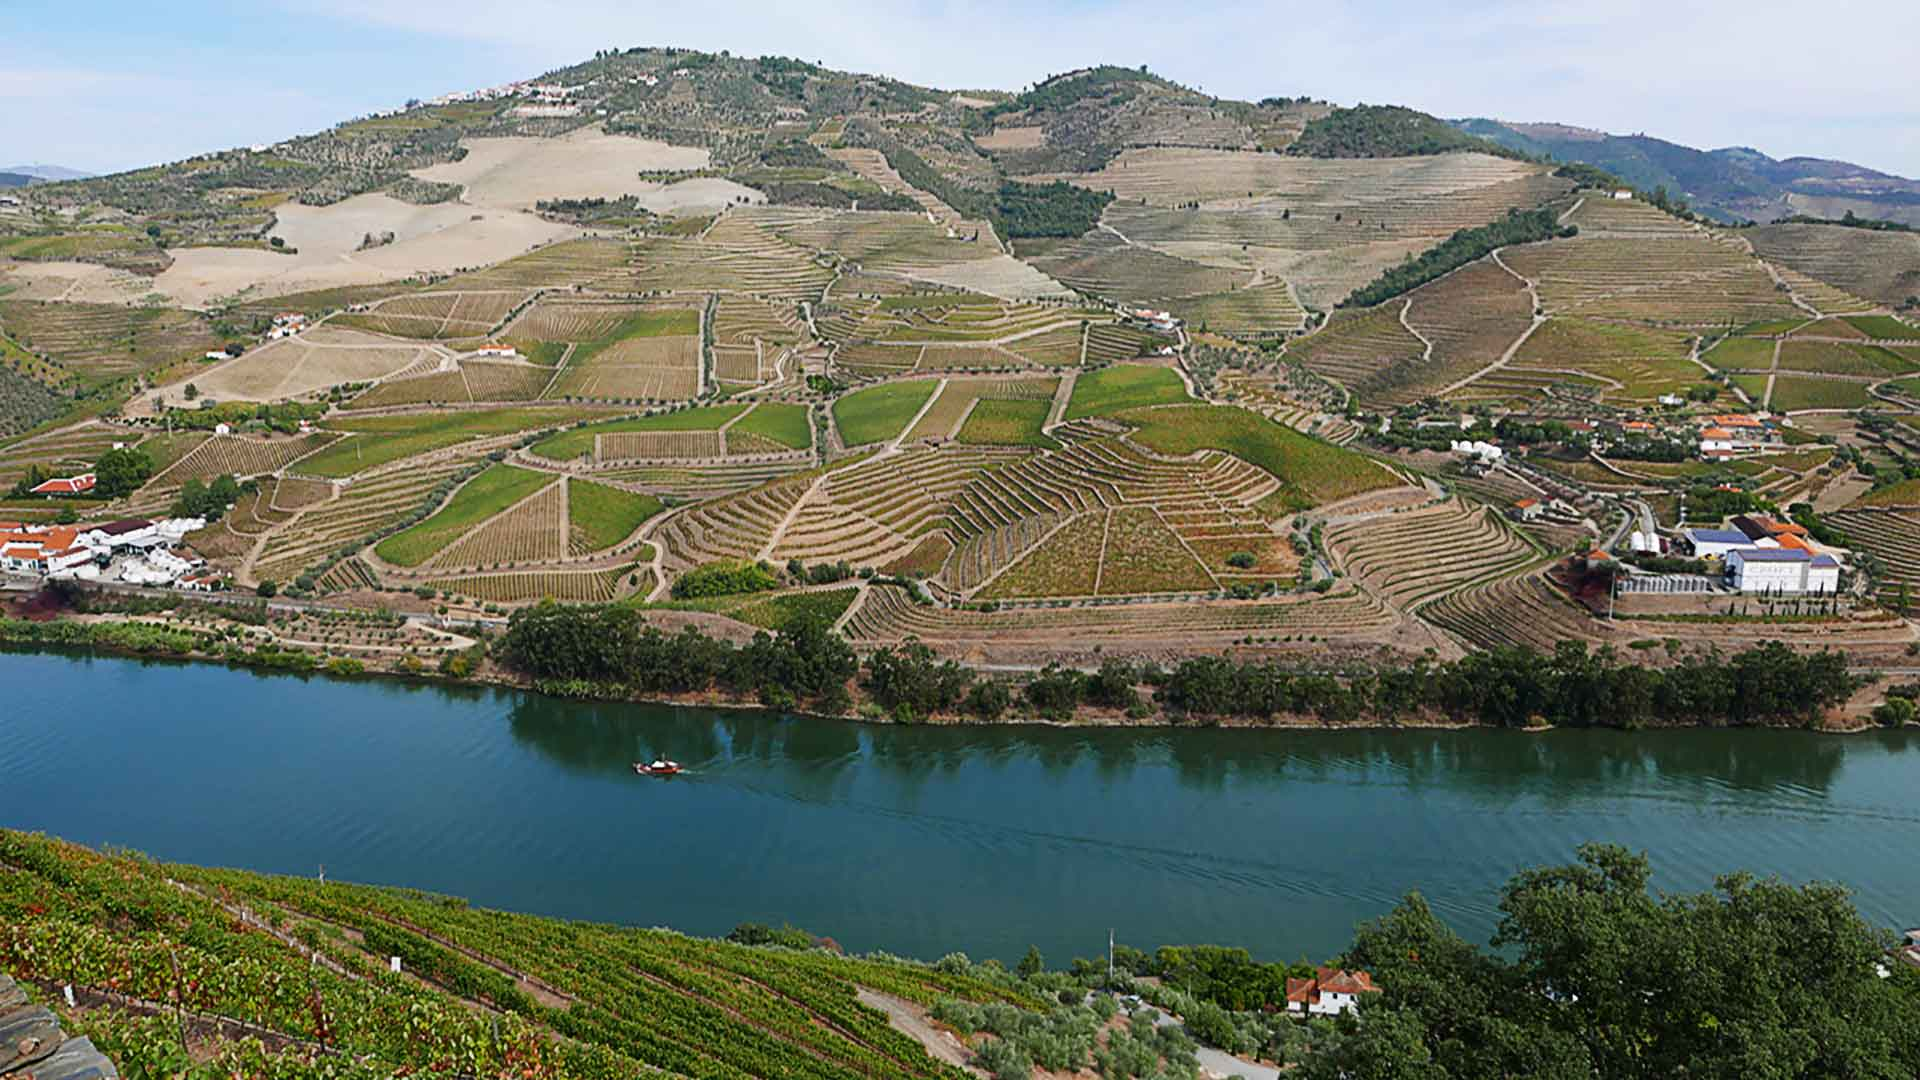 Grapes for Port wine in wonderful Douro Valley